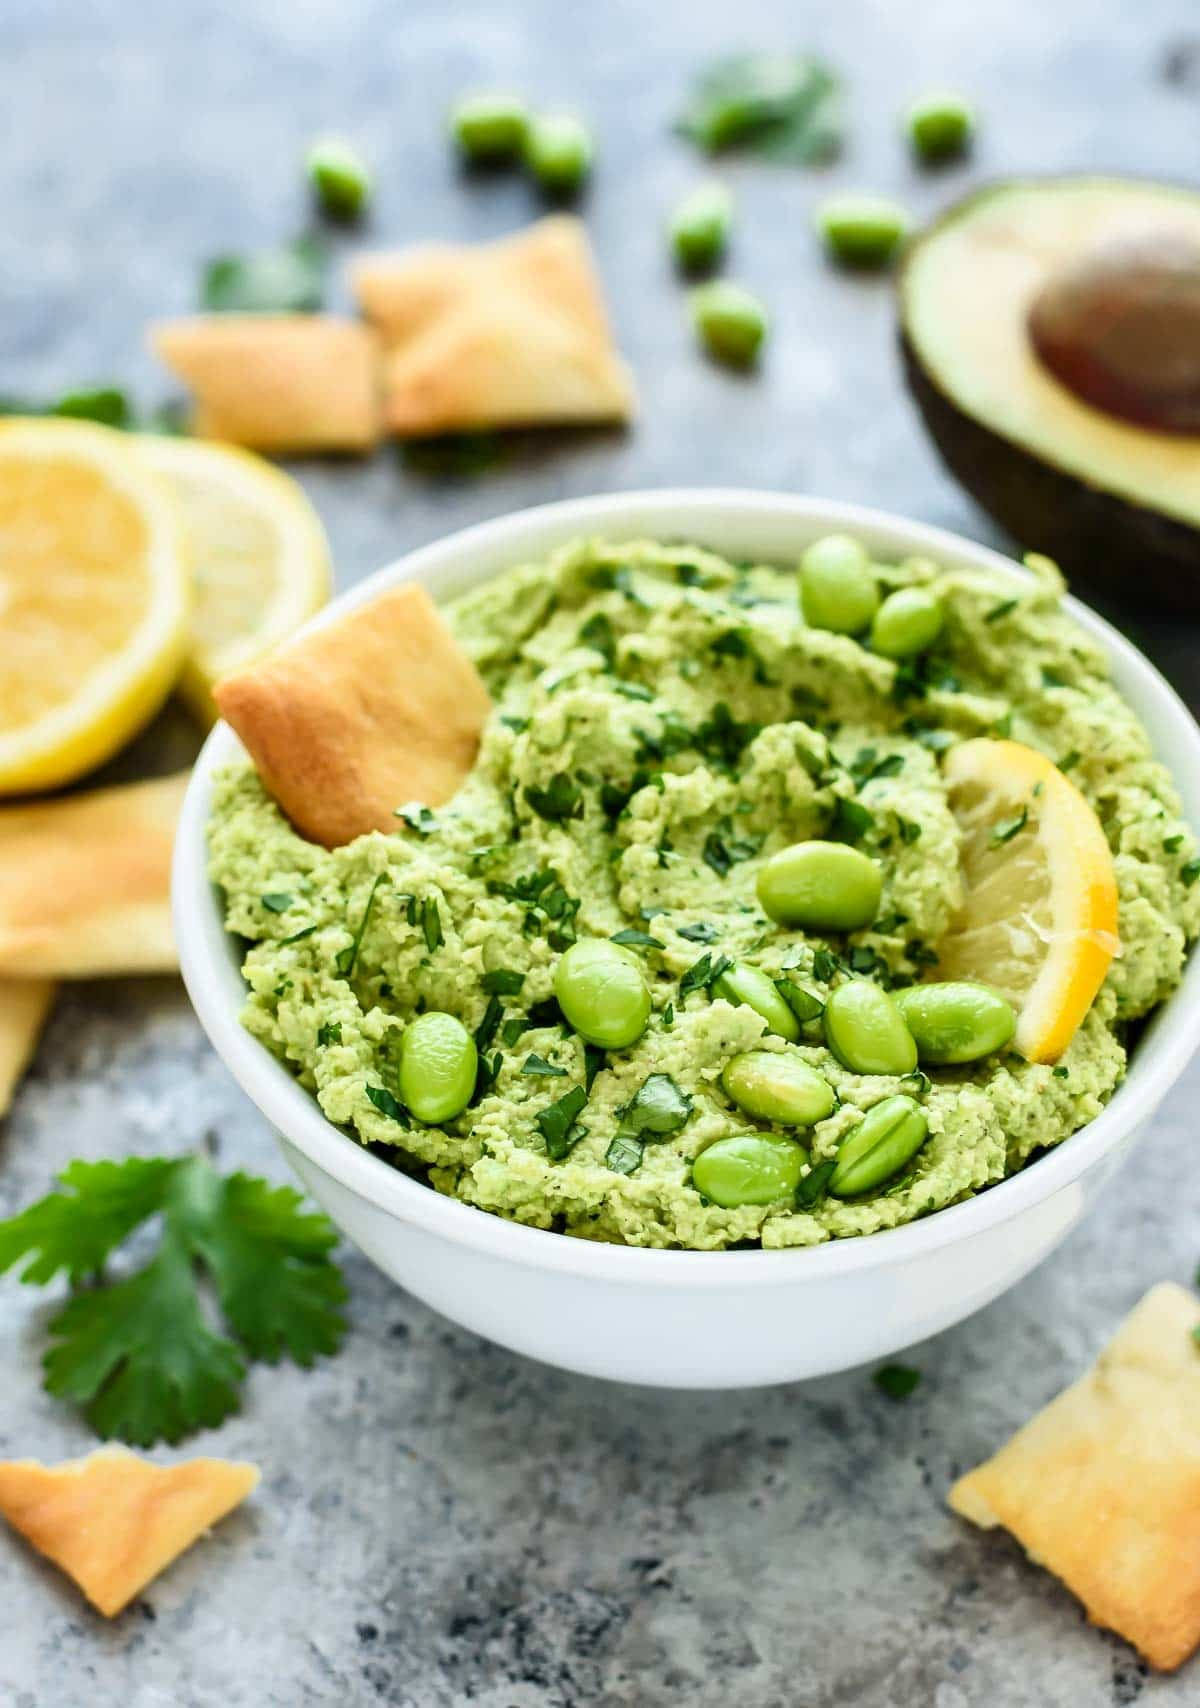 Rich, creamy hummus made with avocado and NO tahini! With edamame, avocado, and fresh lemon and garlic, this hummus recipe is loaded with super foods and is a great healthy dip, healthy snack, and sandwich spread too! @wellplated